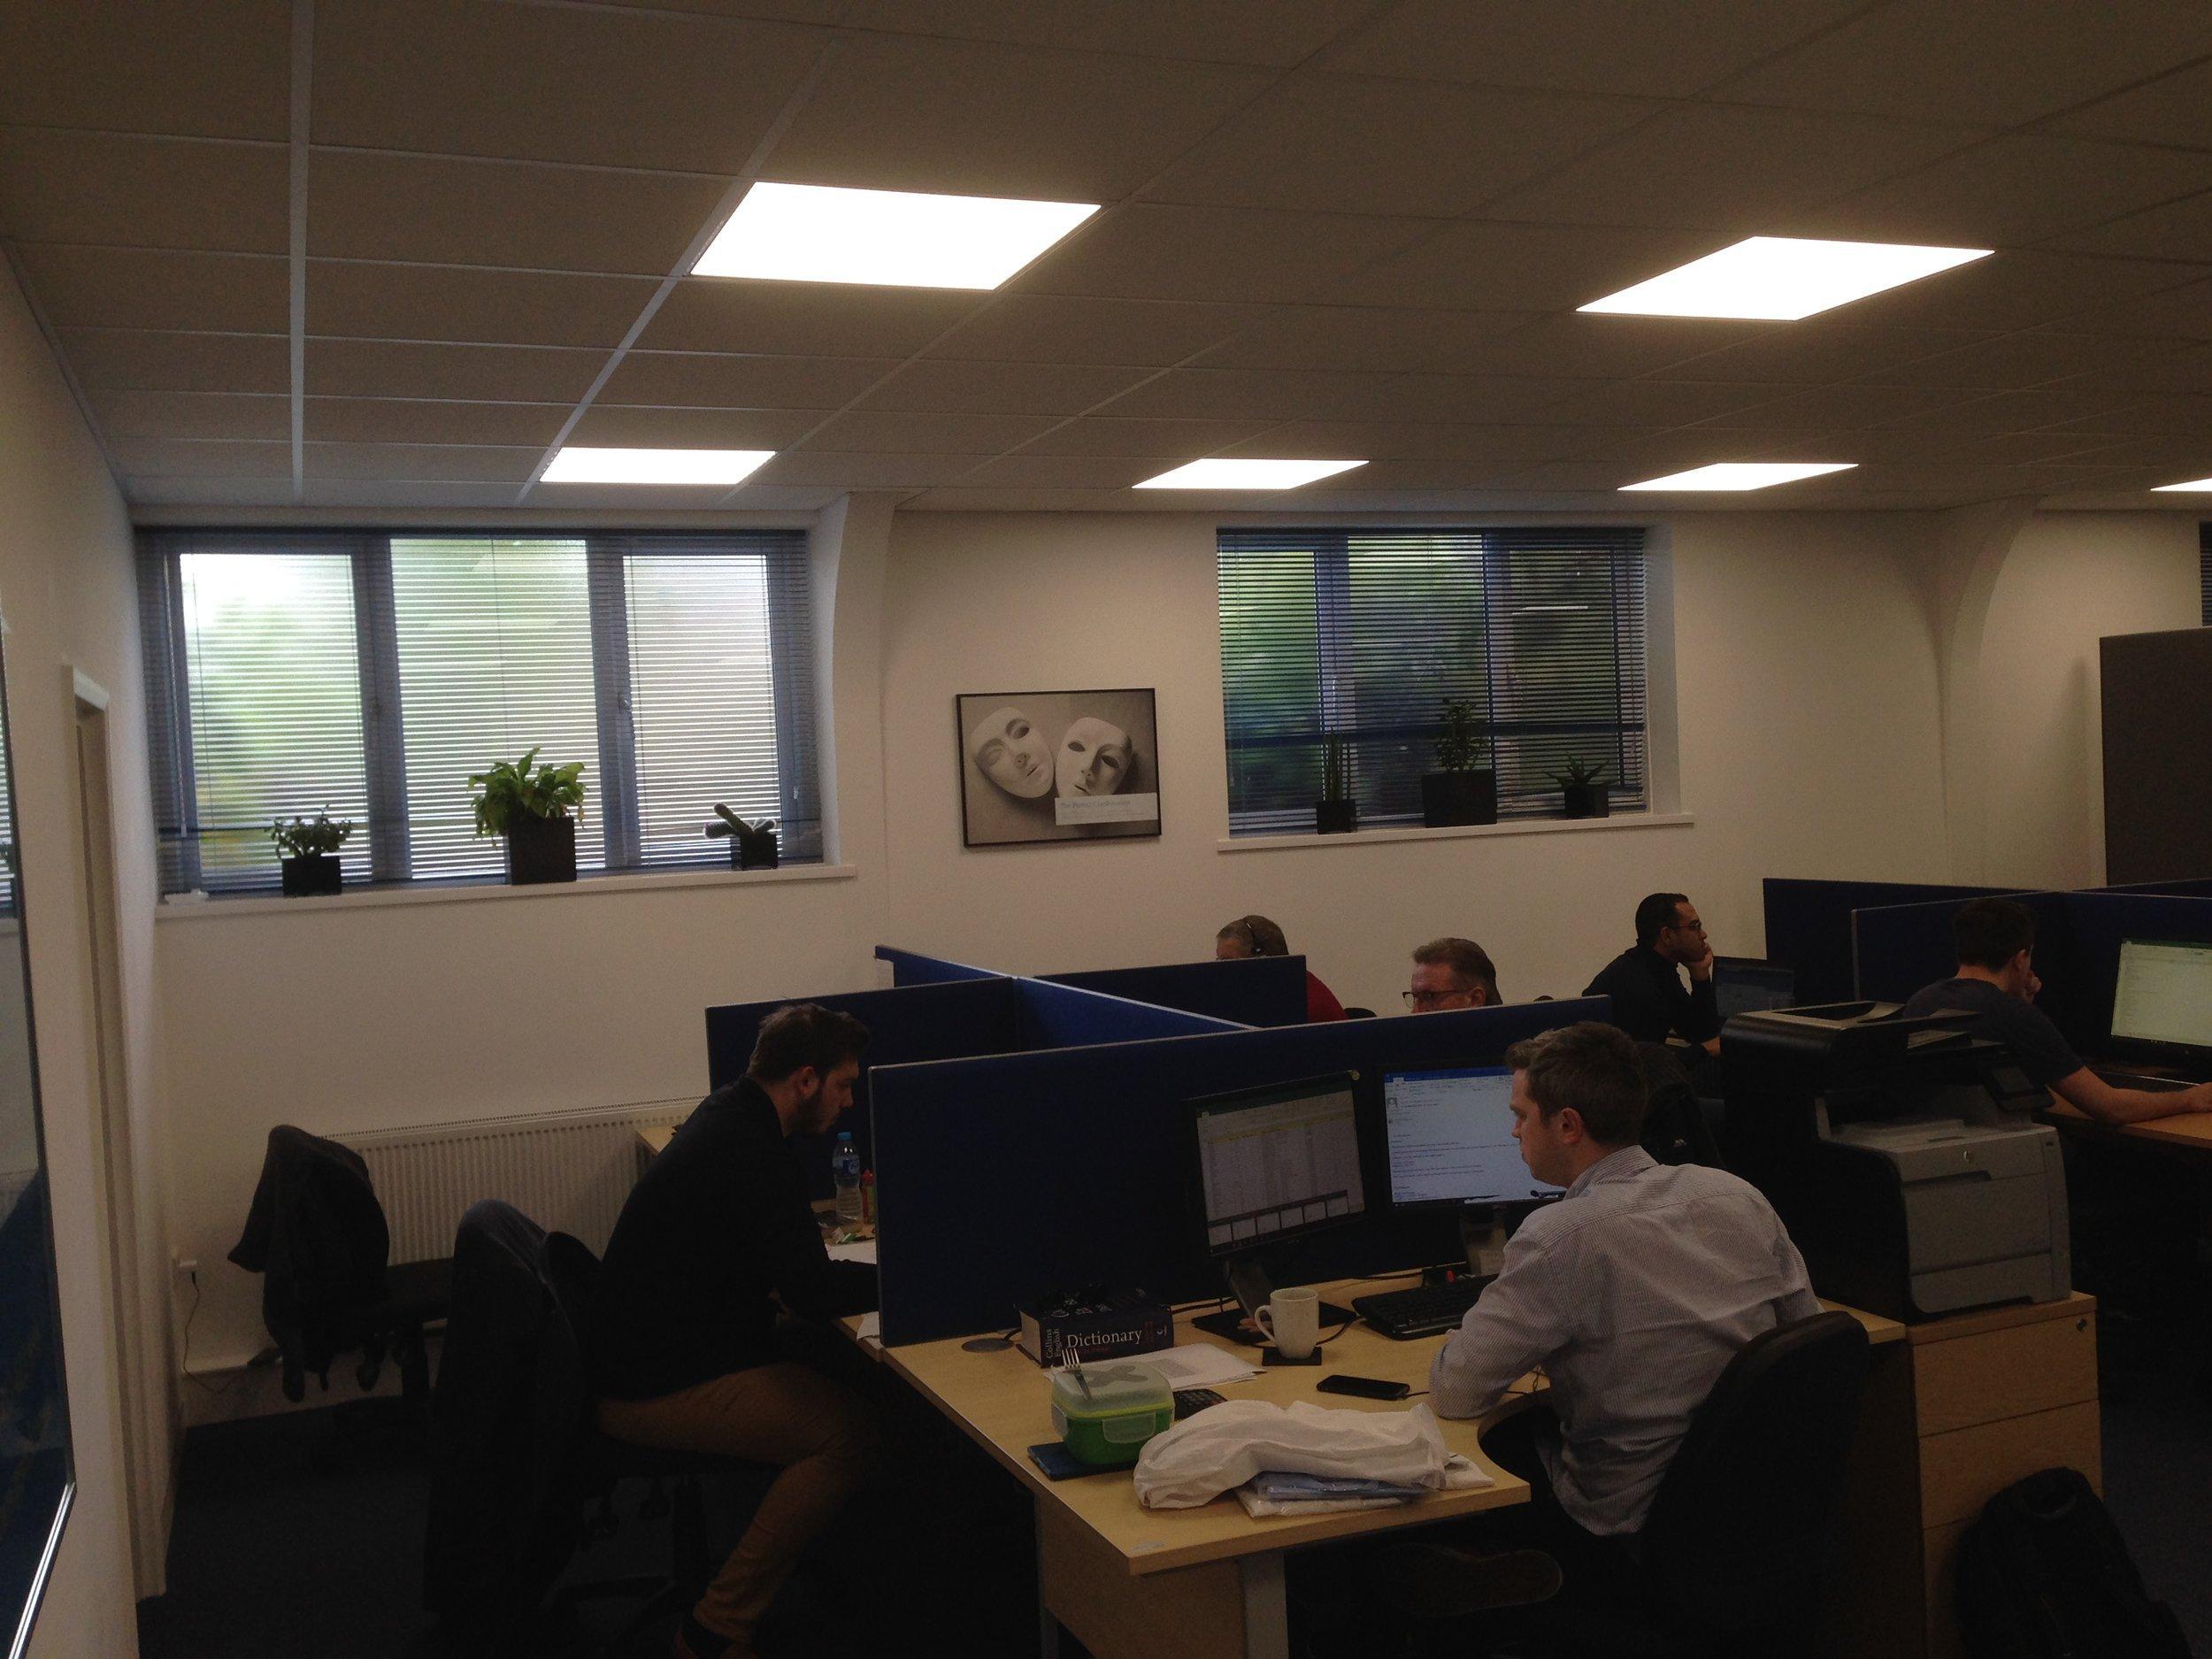 Concept design and office fit-out - Witley marketing sector-10